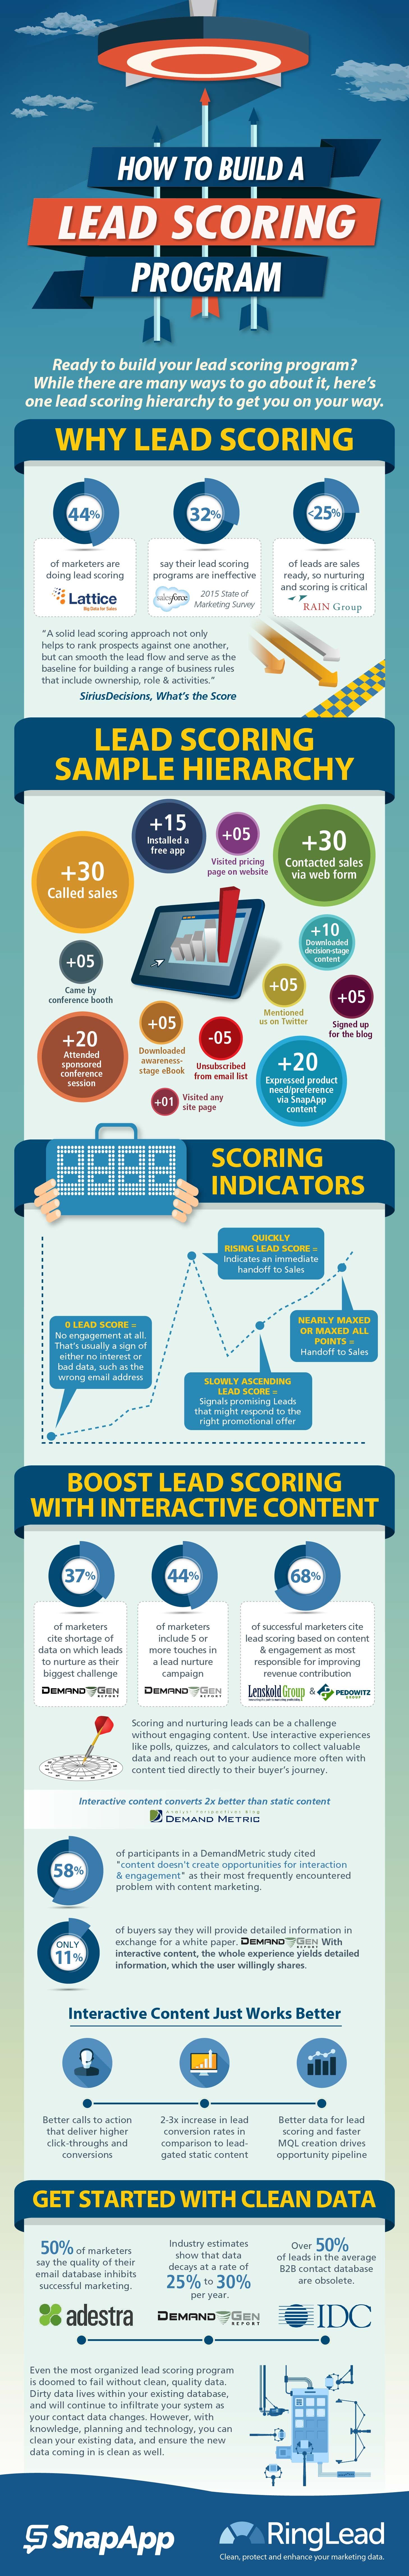 Infographic – How to Build a Lead Scoring Program